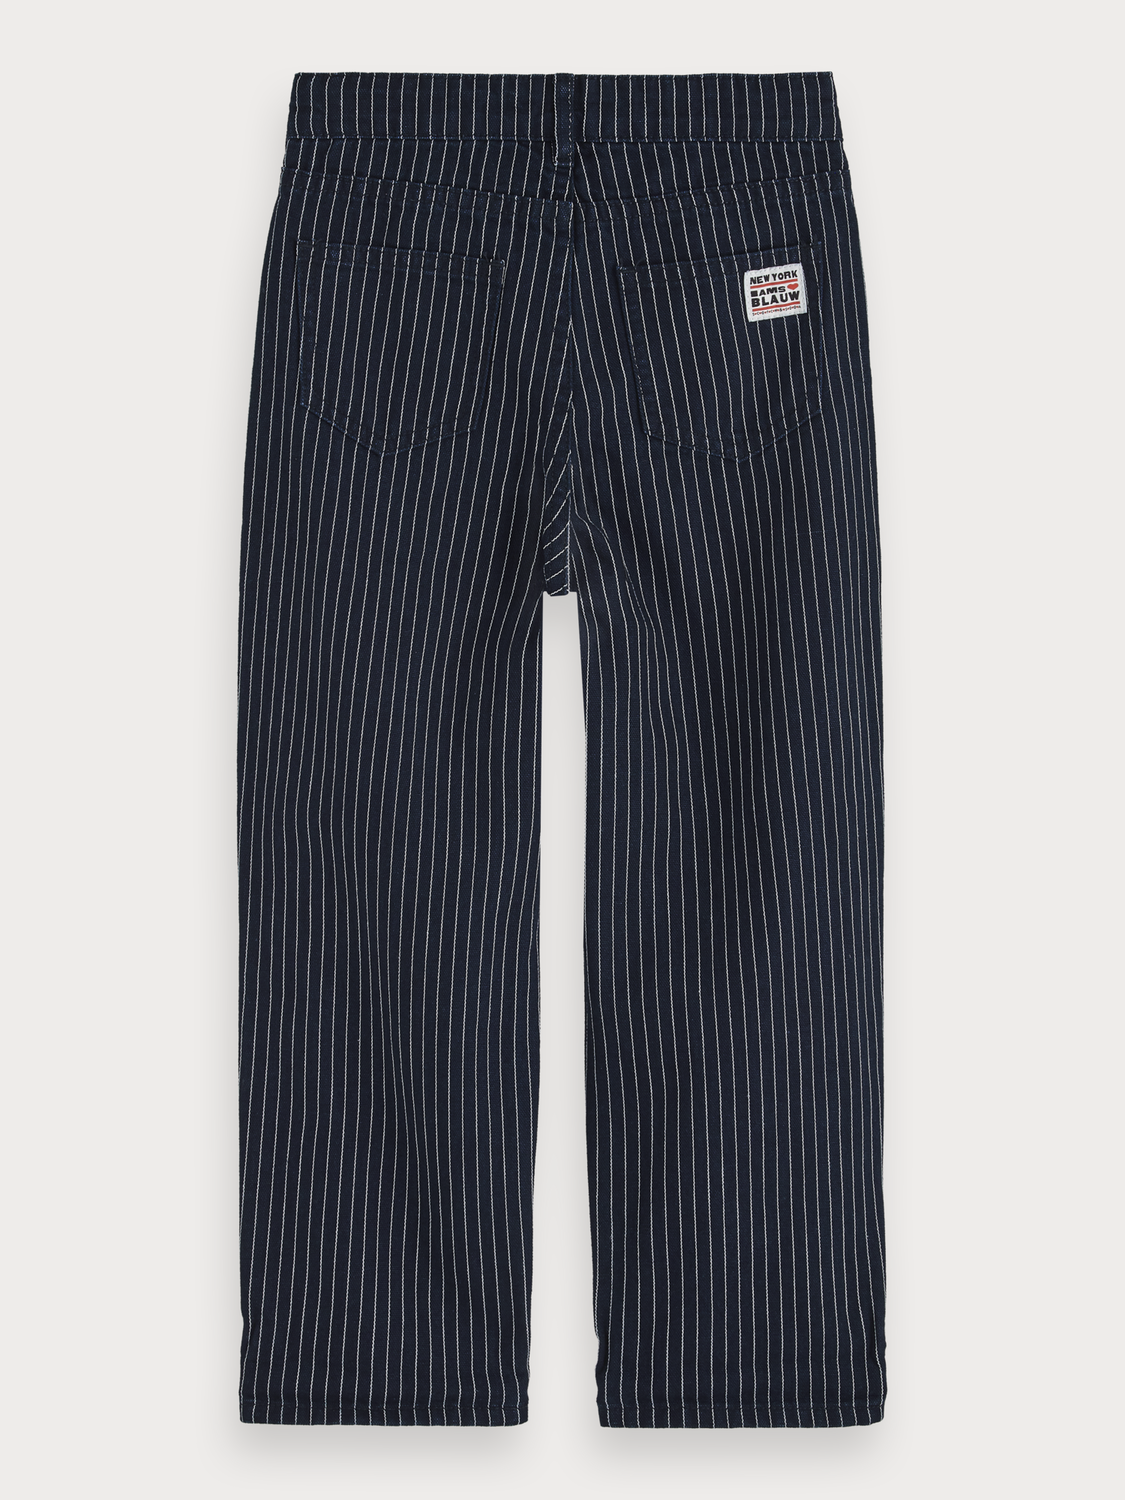 Fille Jean avec rayures hickory